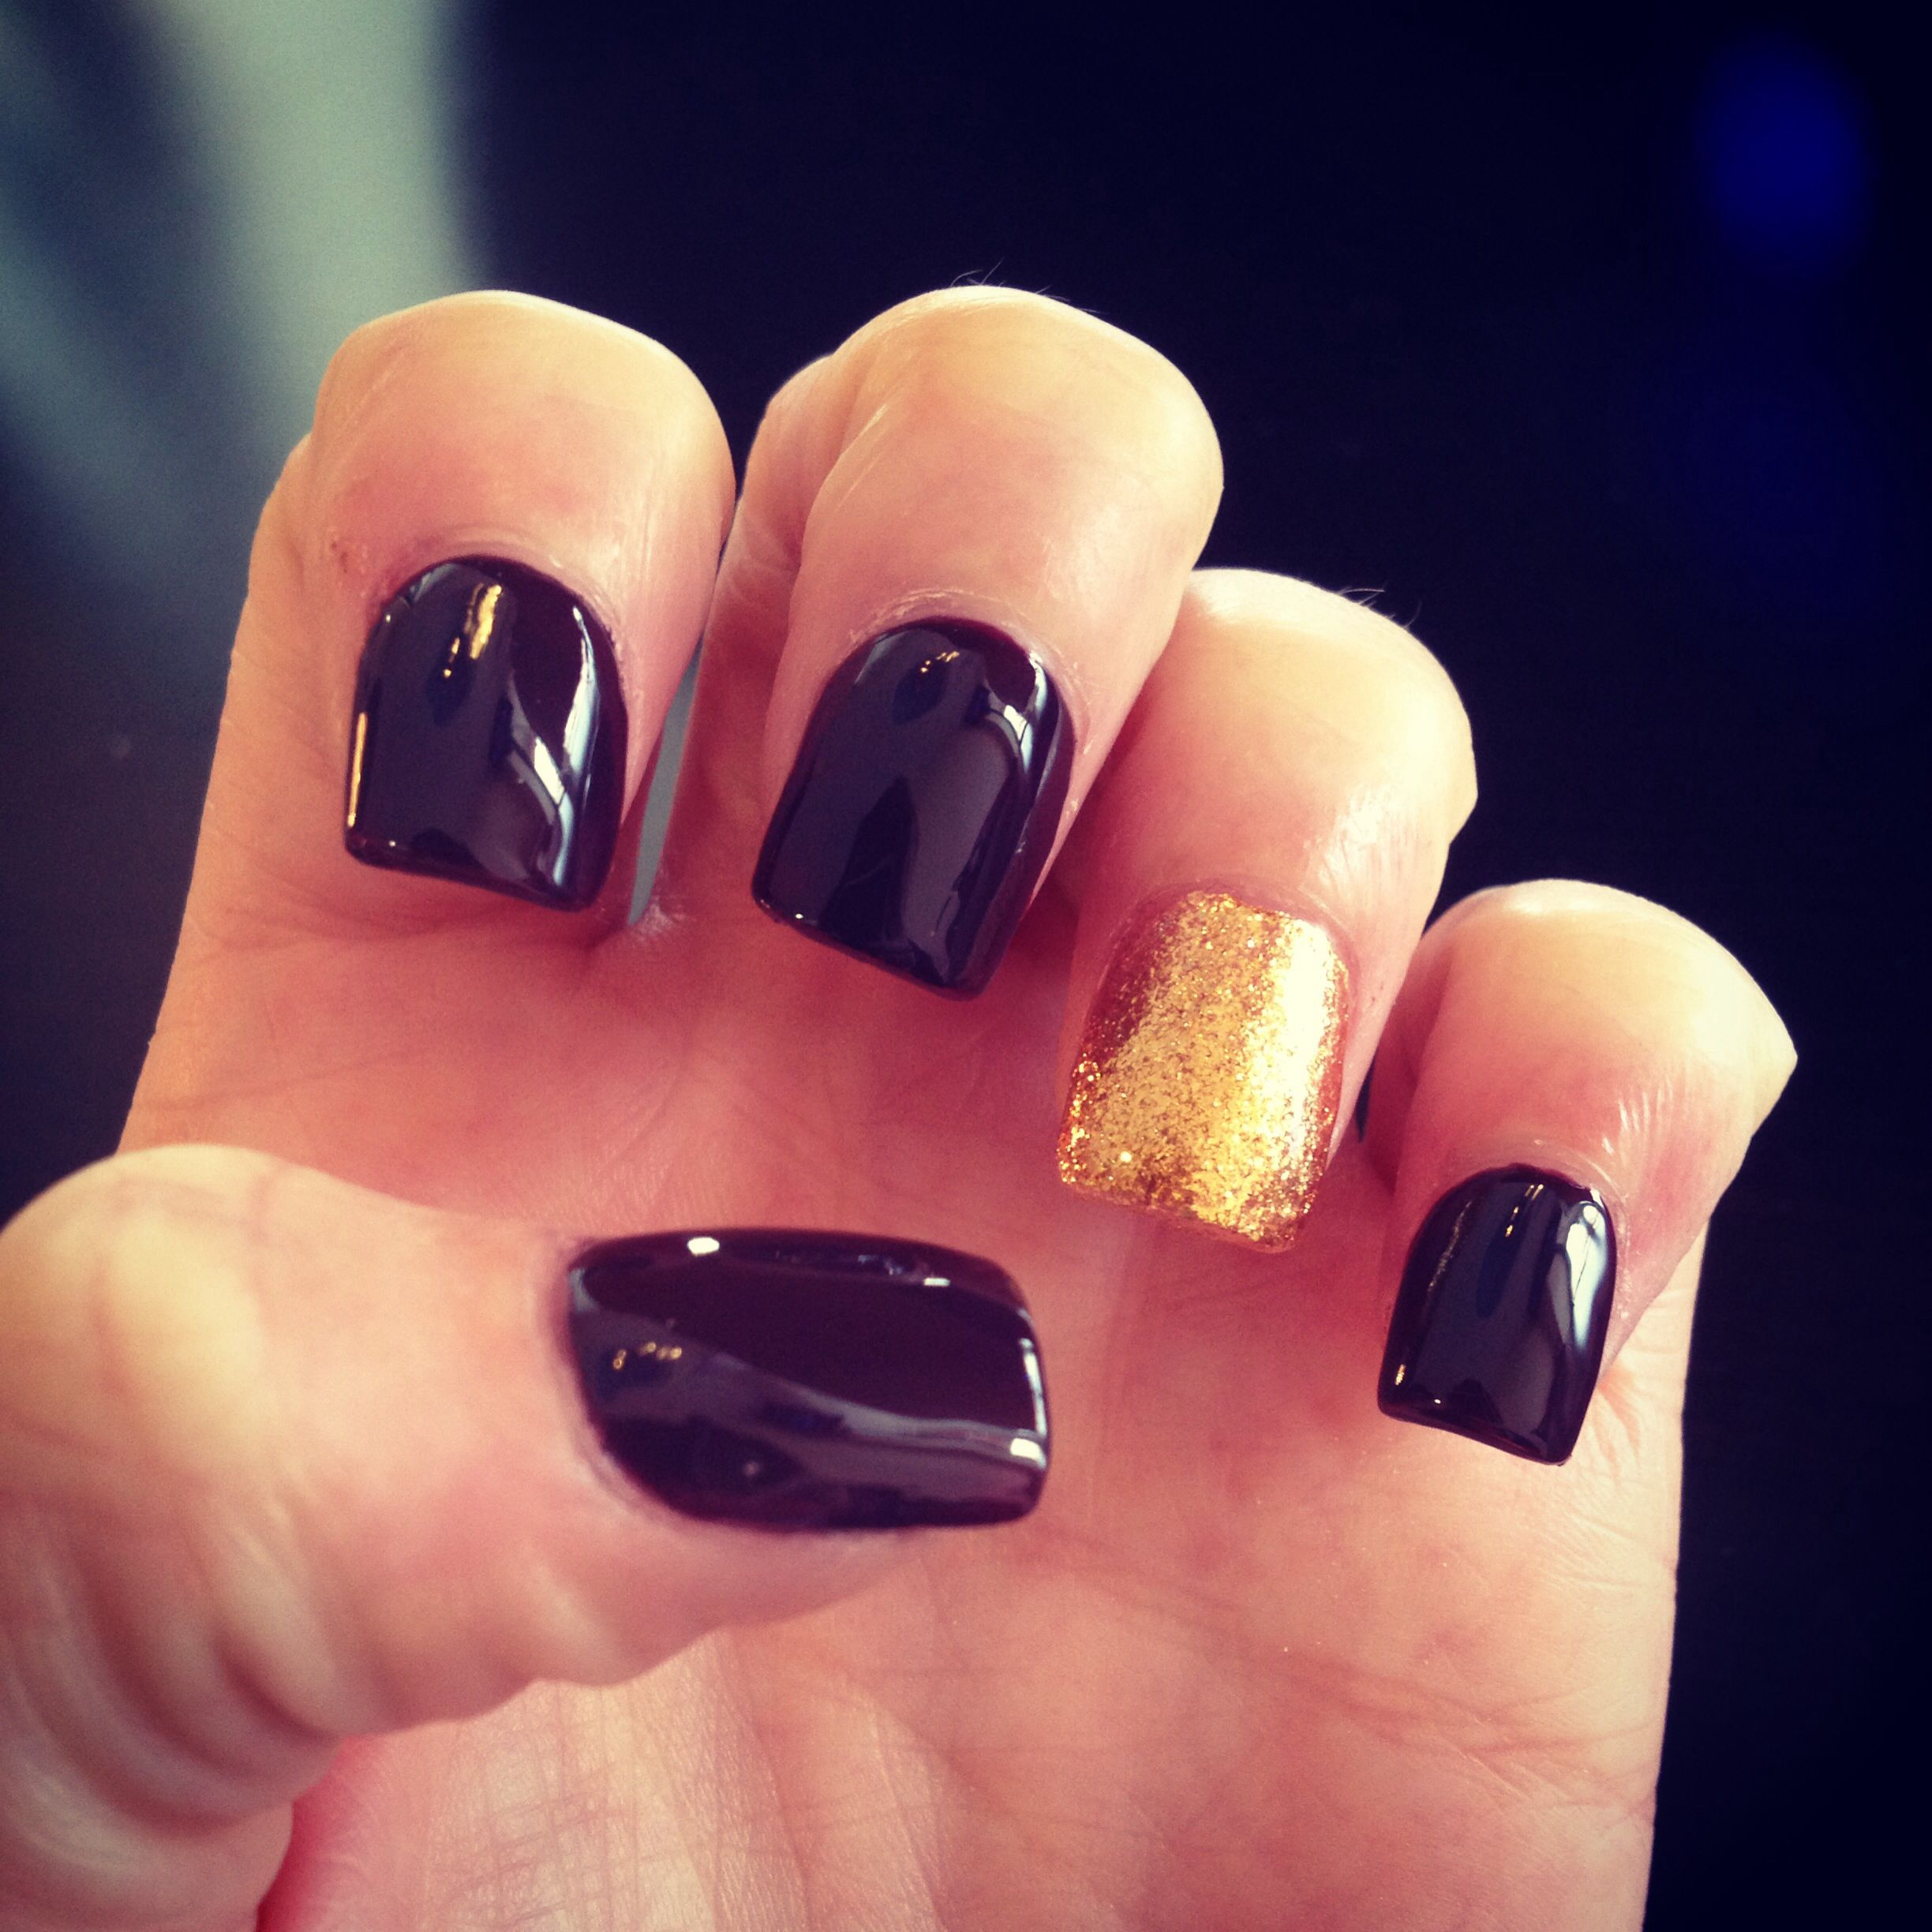 deep purple nails with a gold accent | nails | Pinterest | Purple nail